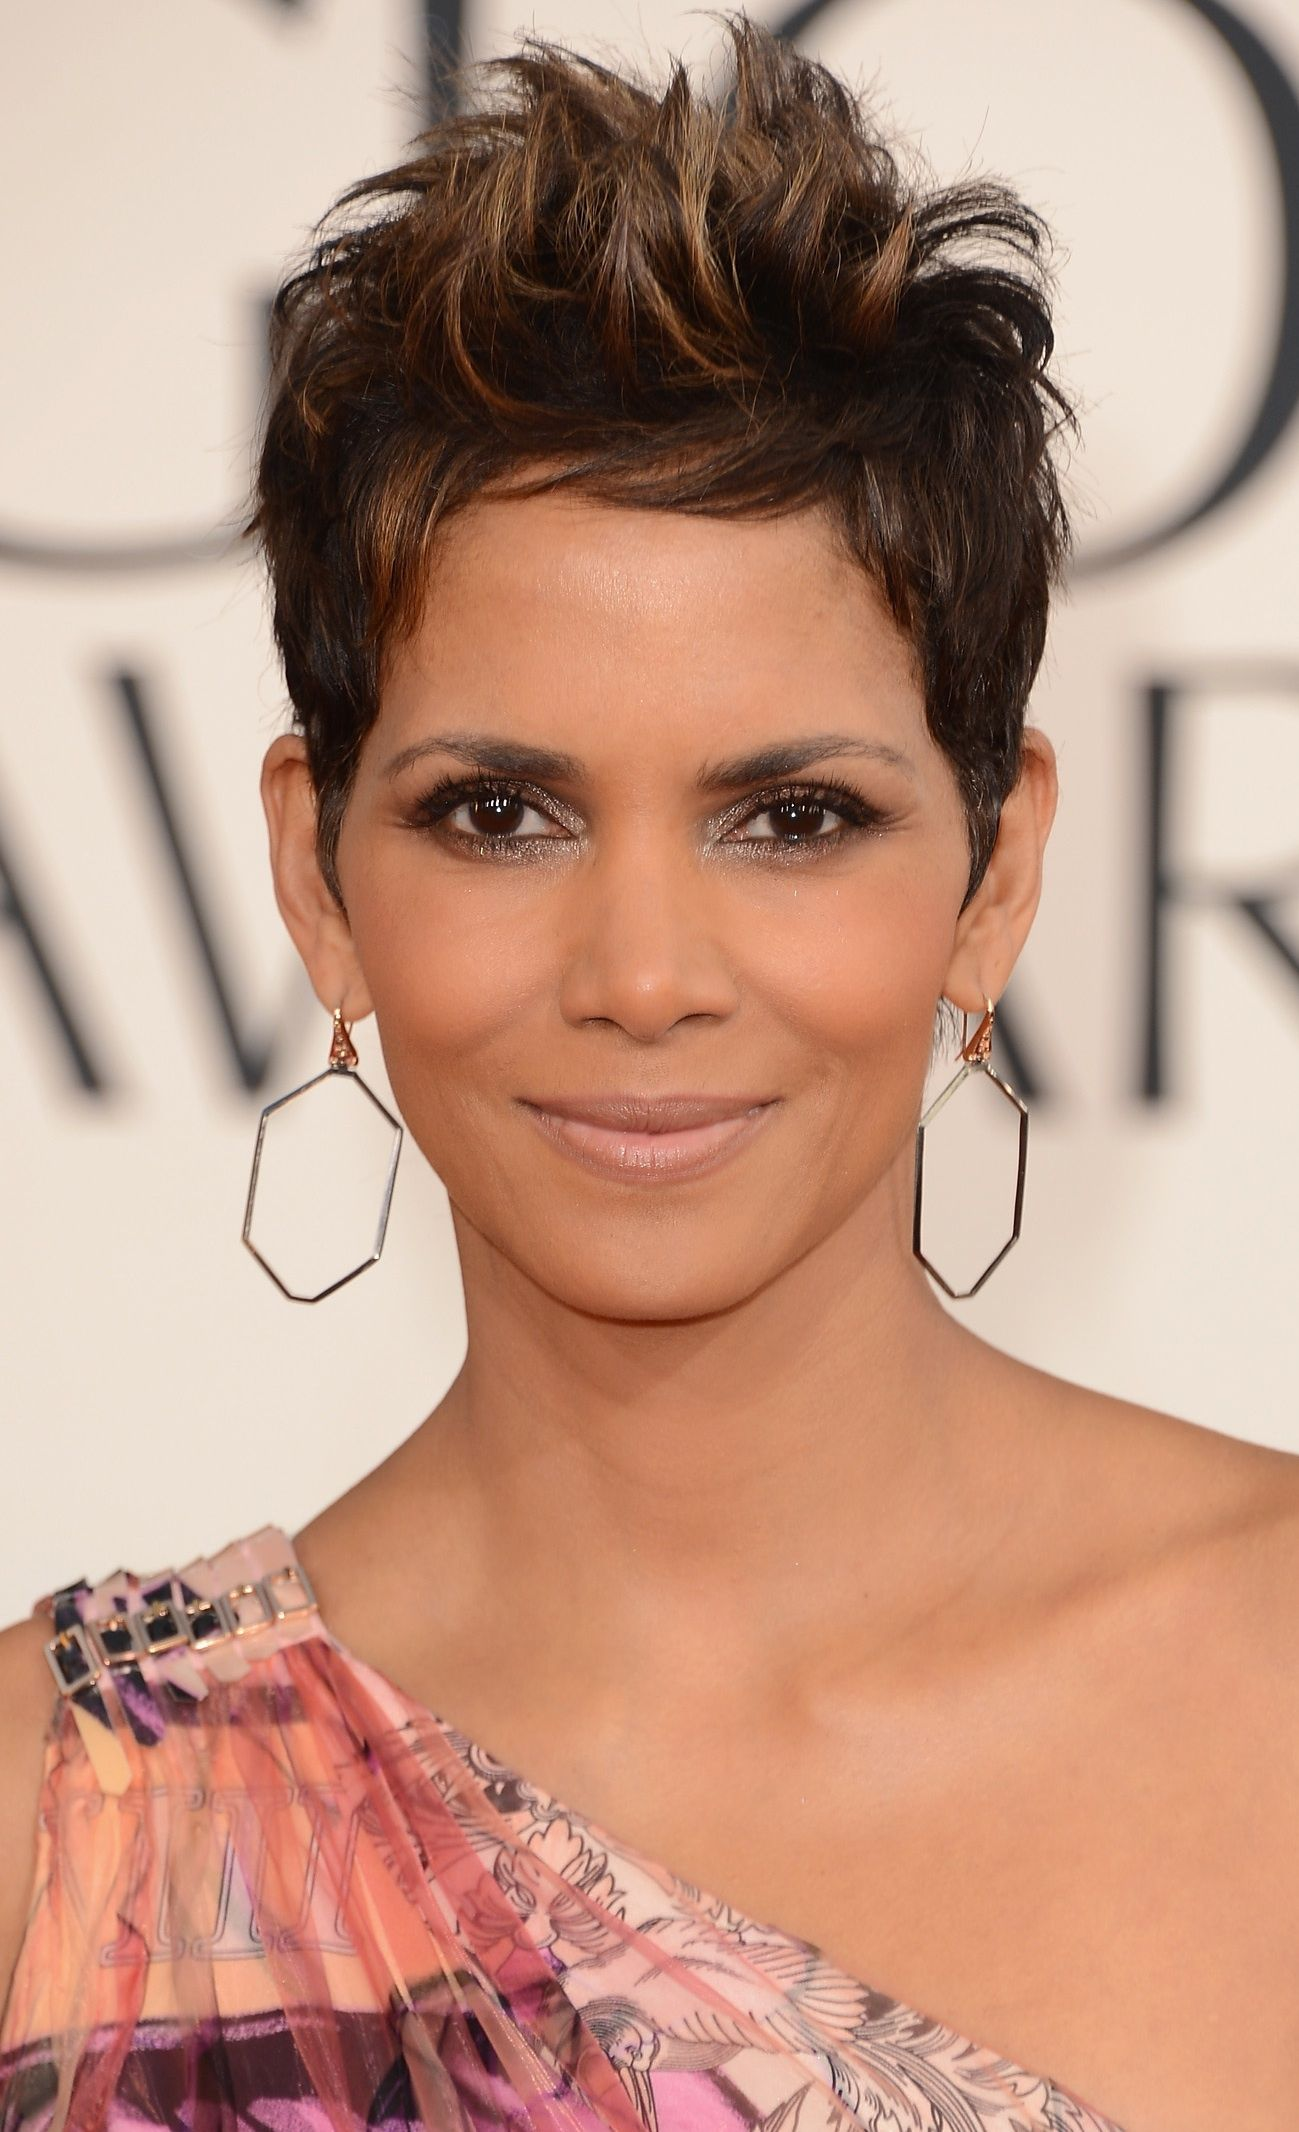 how to style a pixie cut, according to celebrities | hair